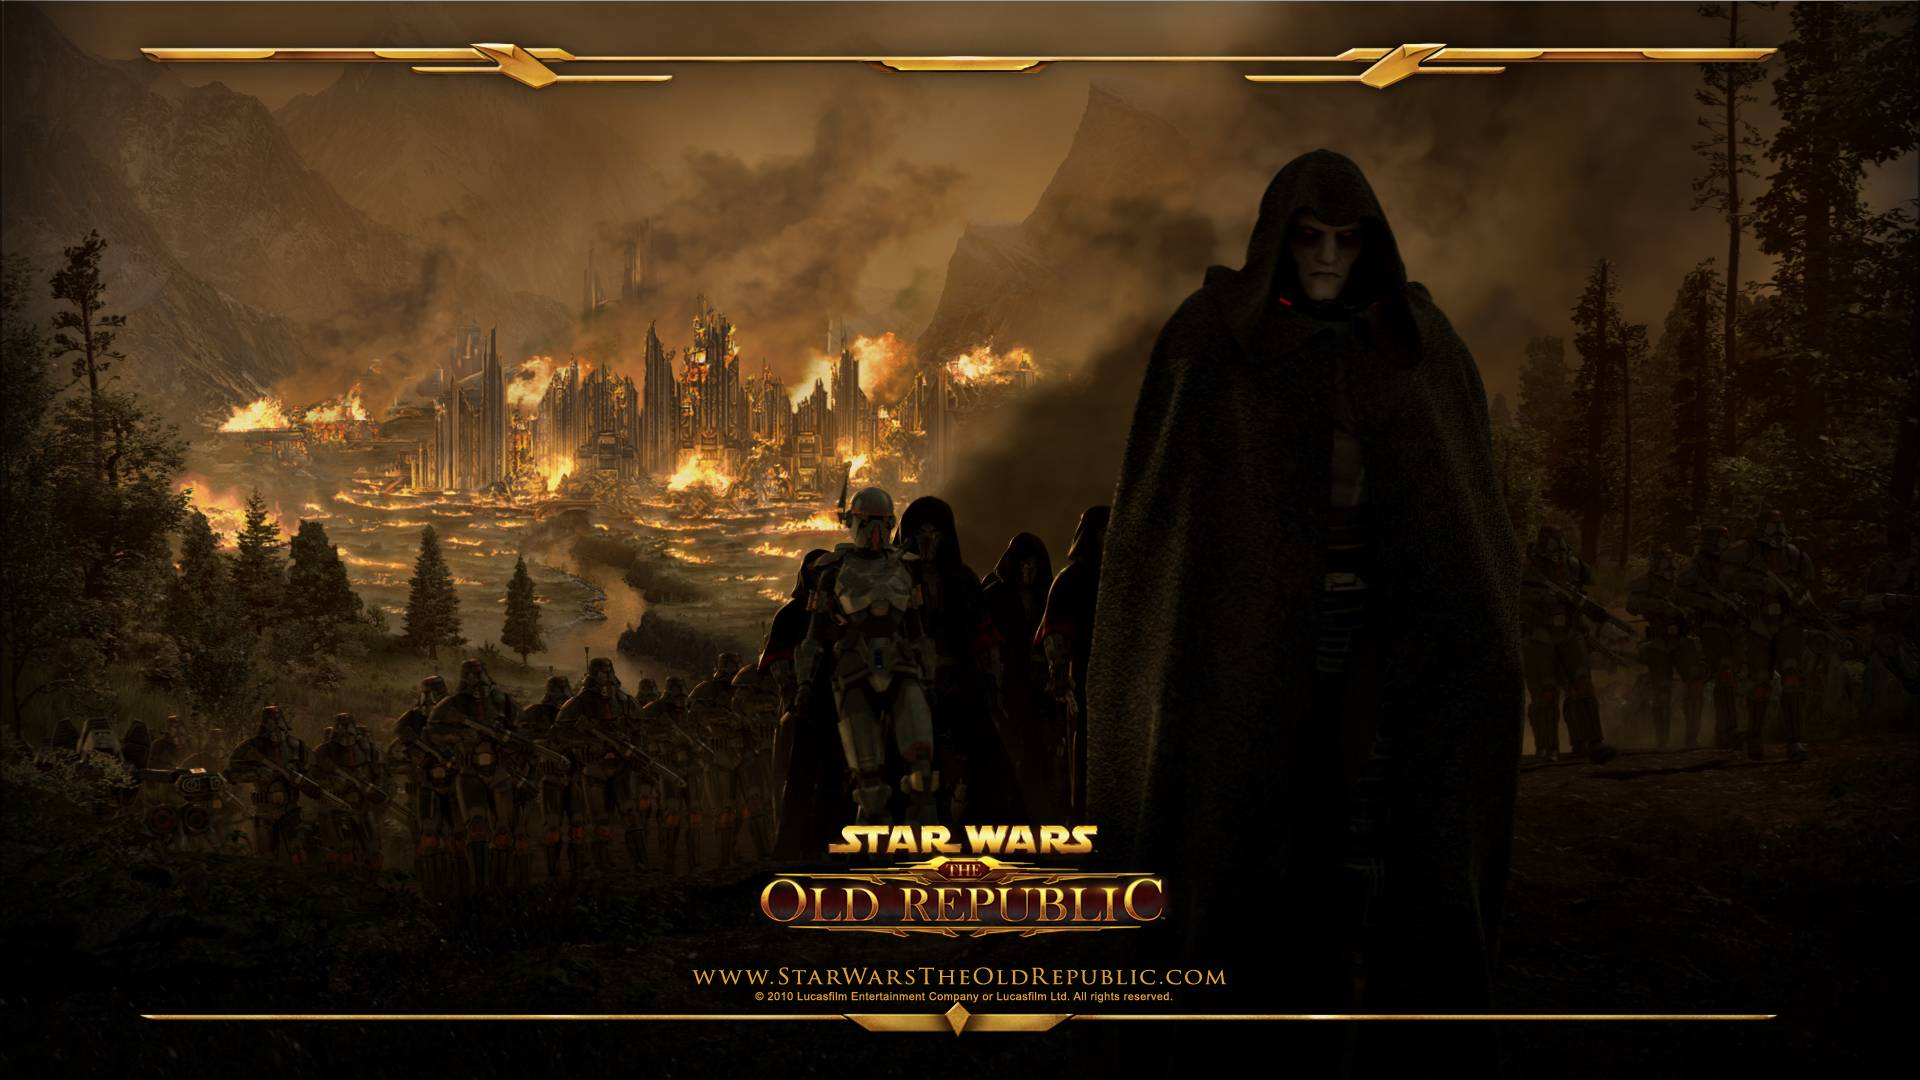 Star Wars The Old Republic wallpaper 5 1920x1080